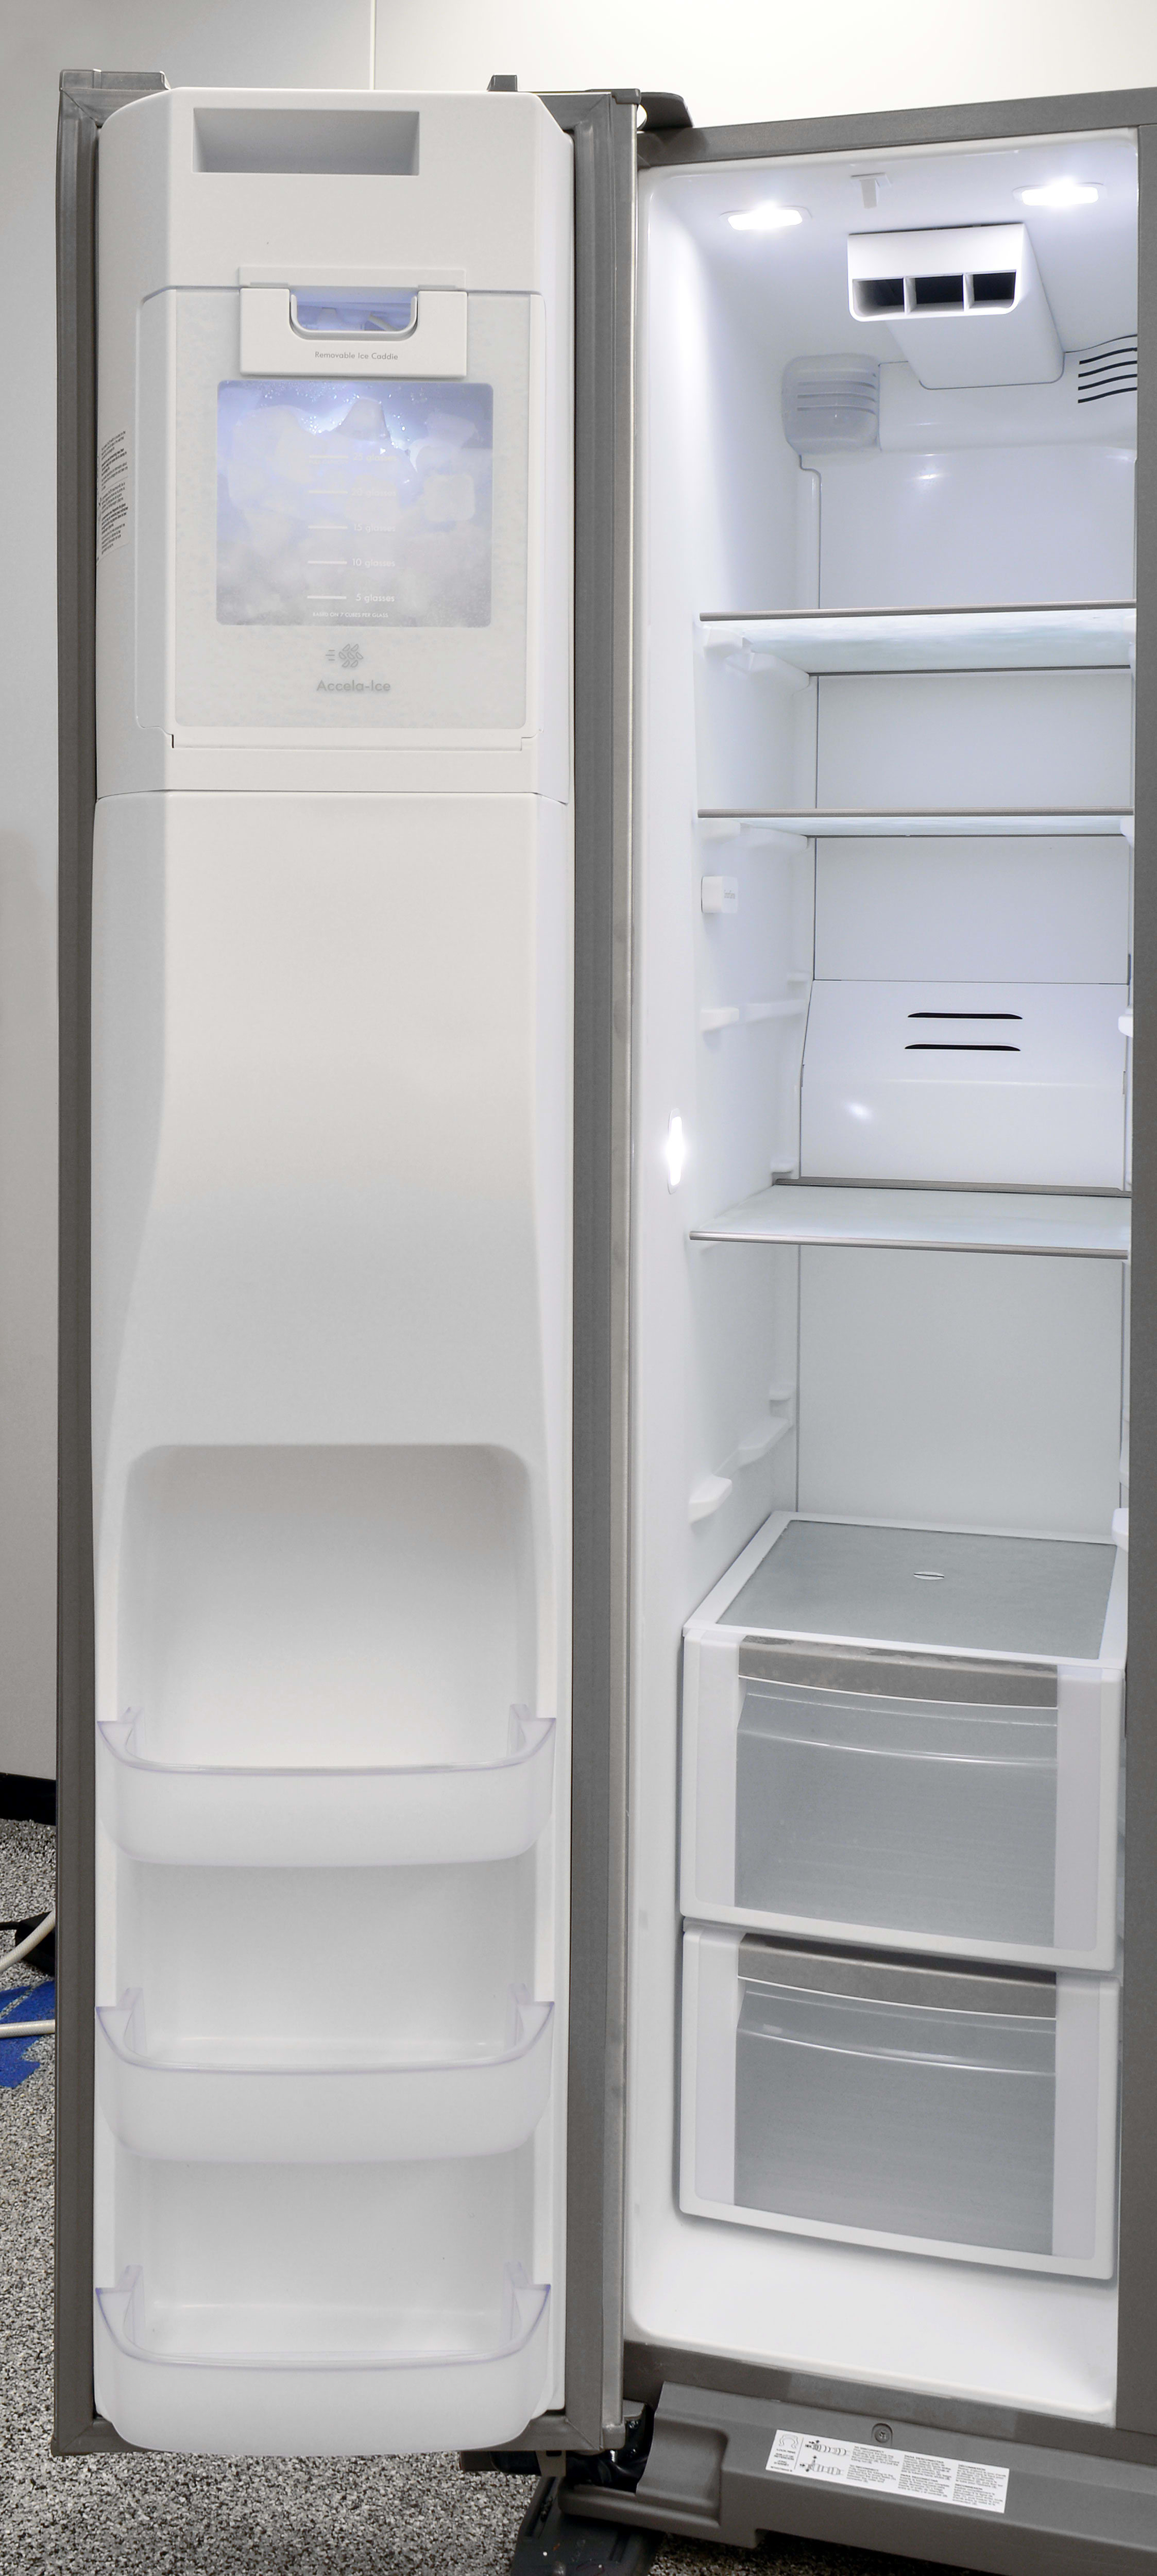 The Kenmore Elite 51773's freezer door storage is pretty minimal, but still useful for organizing small items.